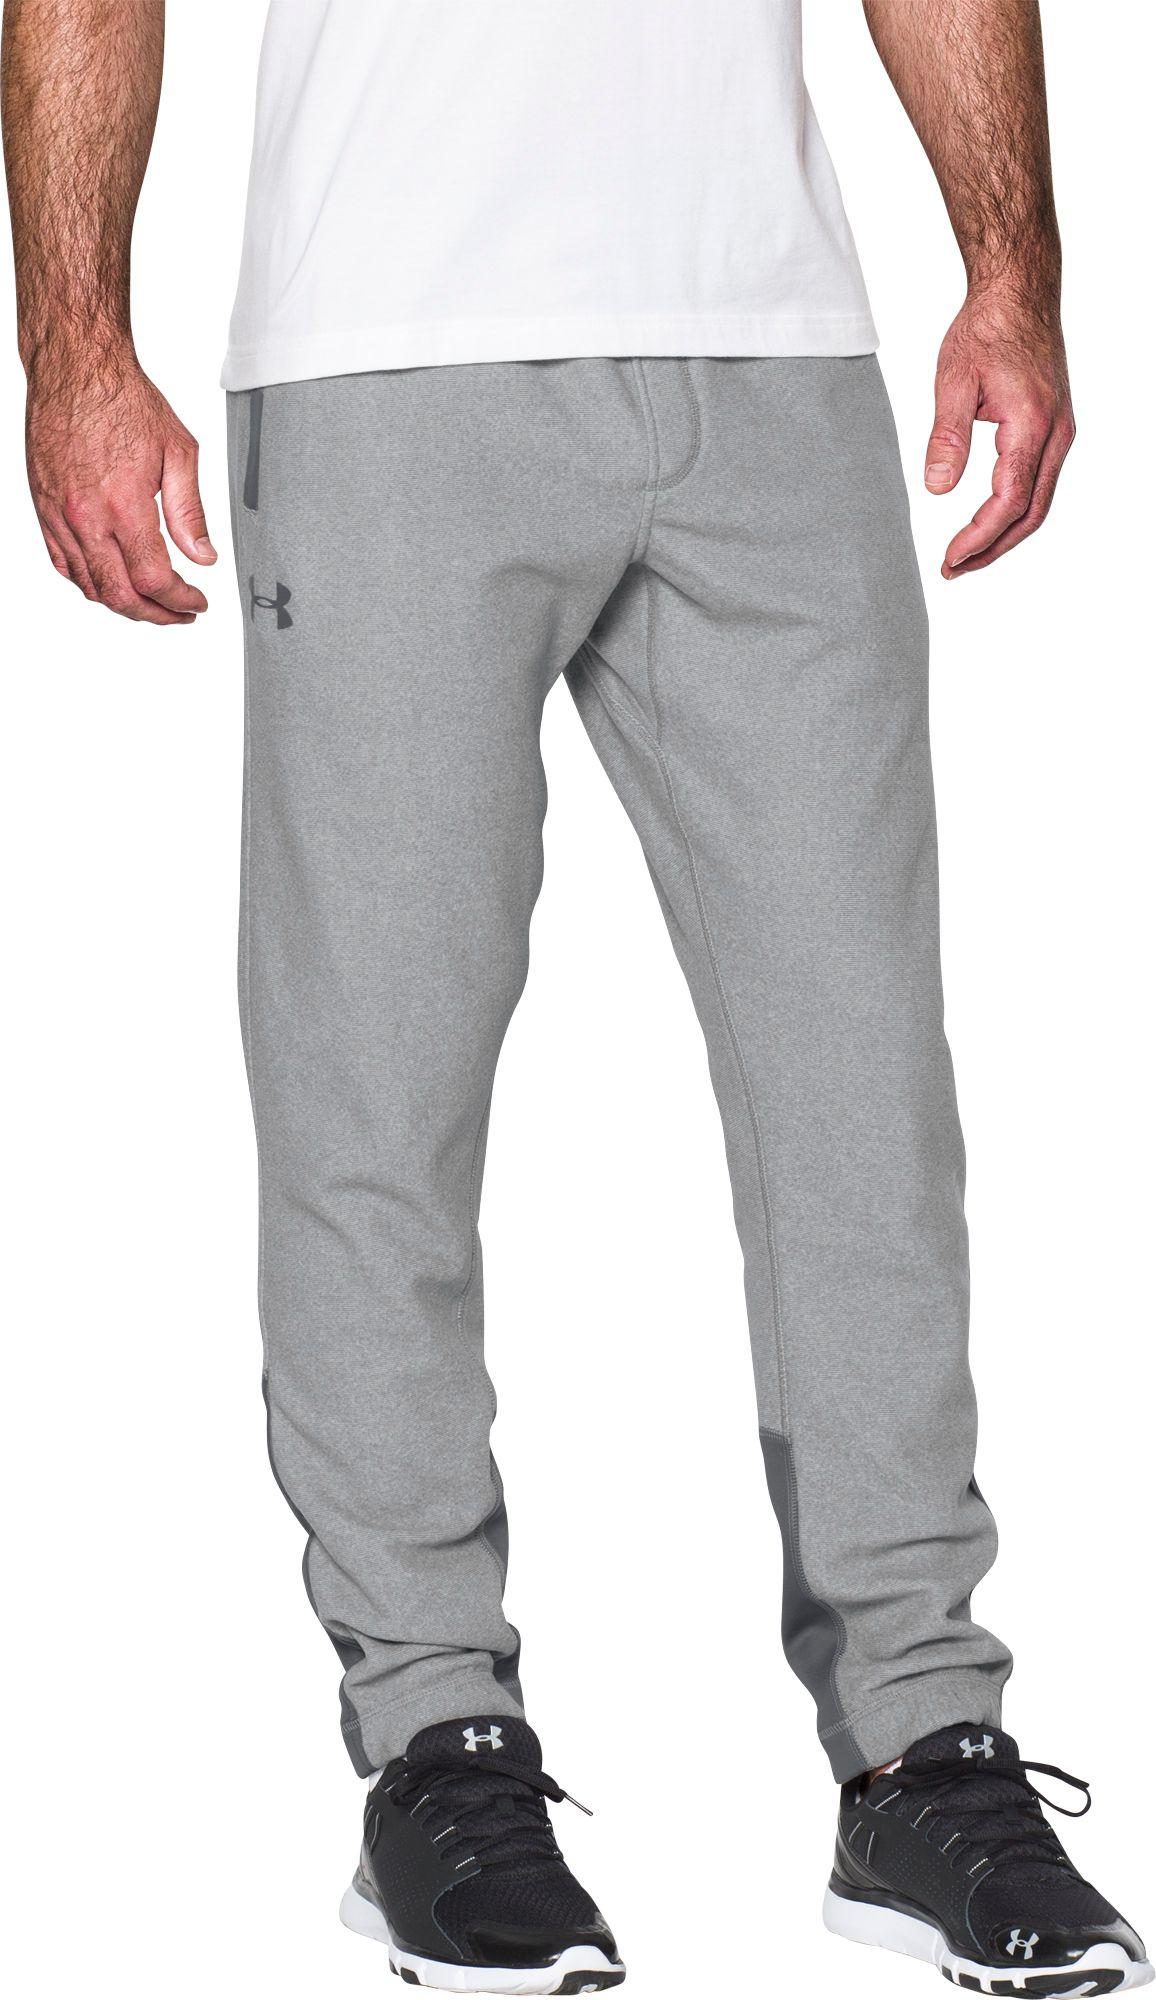 f0a88c399623 Lyst - Under Armour Coldgear Infrared Fleece Pants in Gray for Men